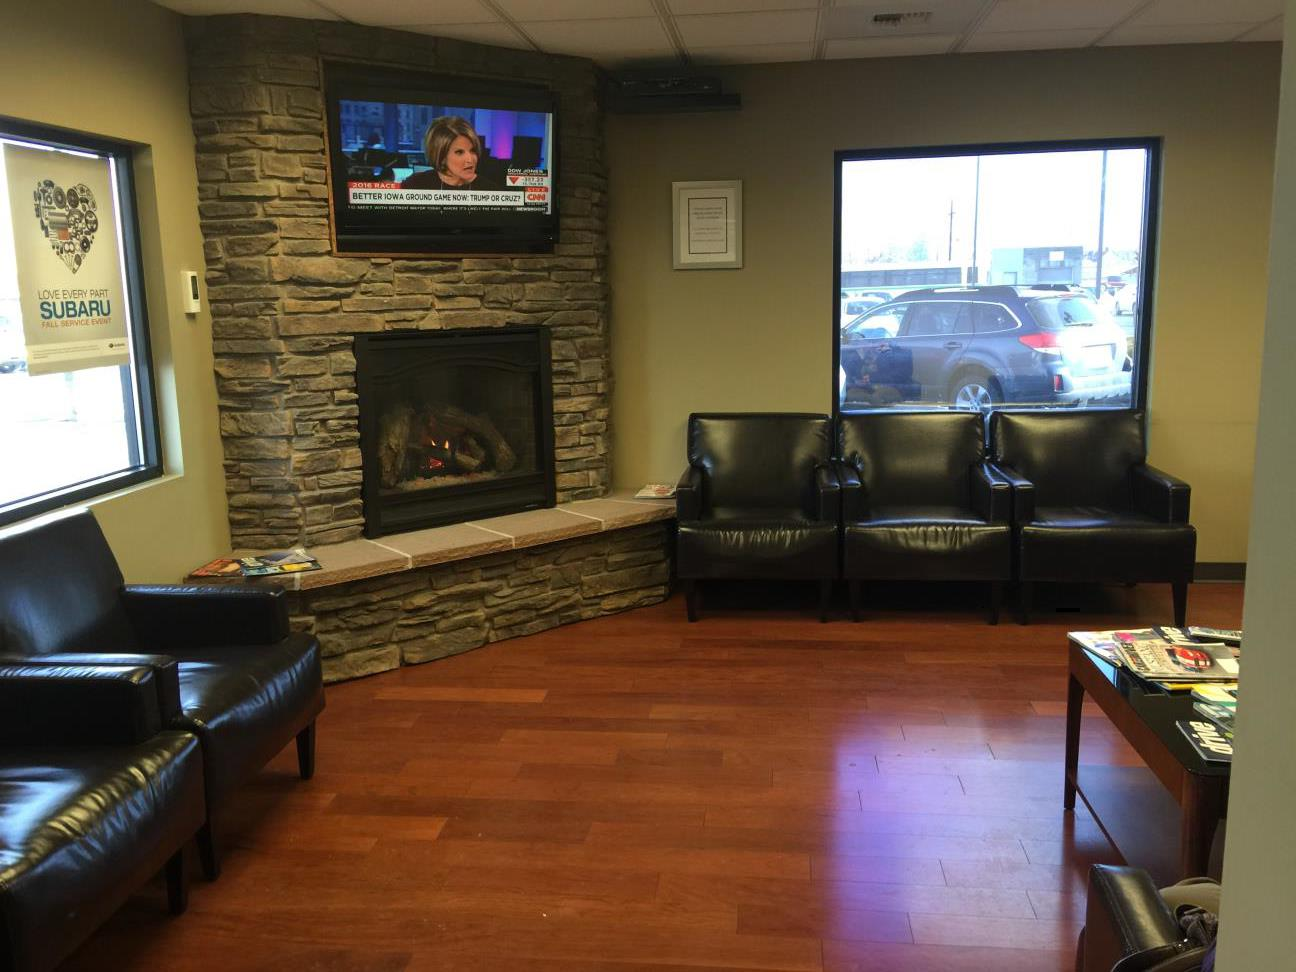 Stewart Subaru waiting area with a fireplace